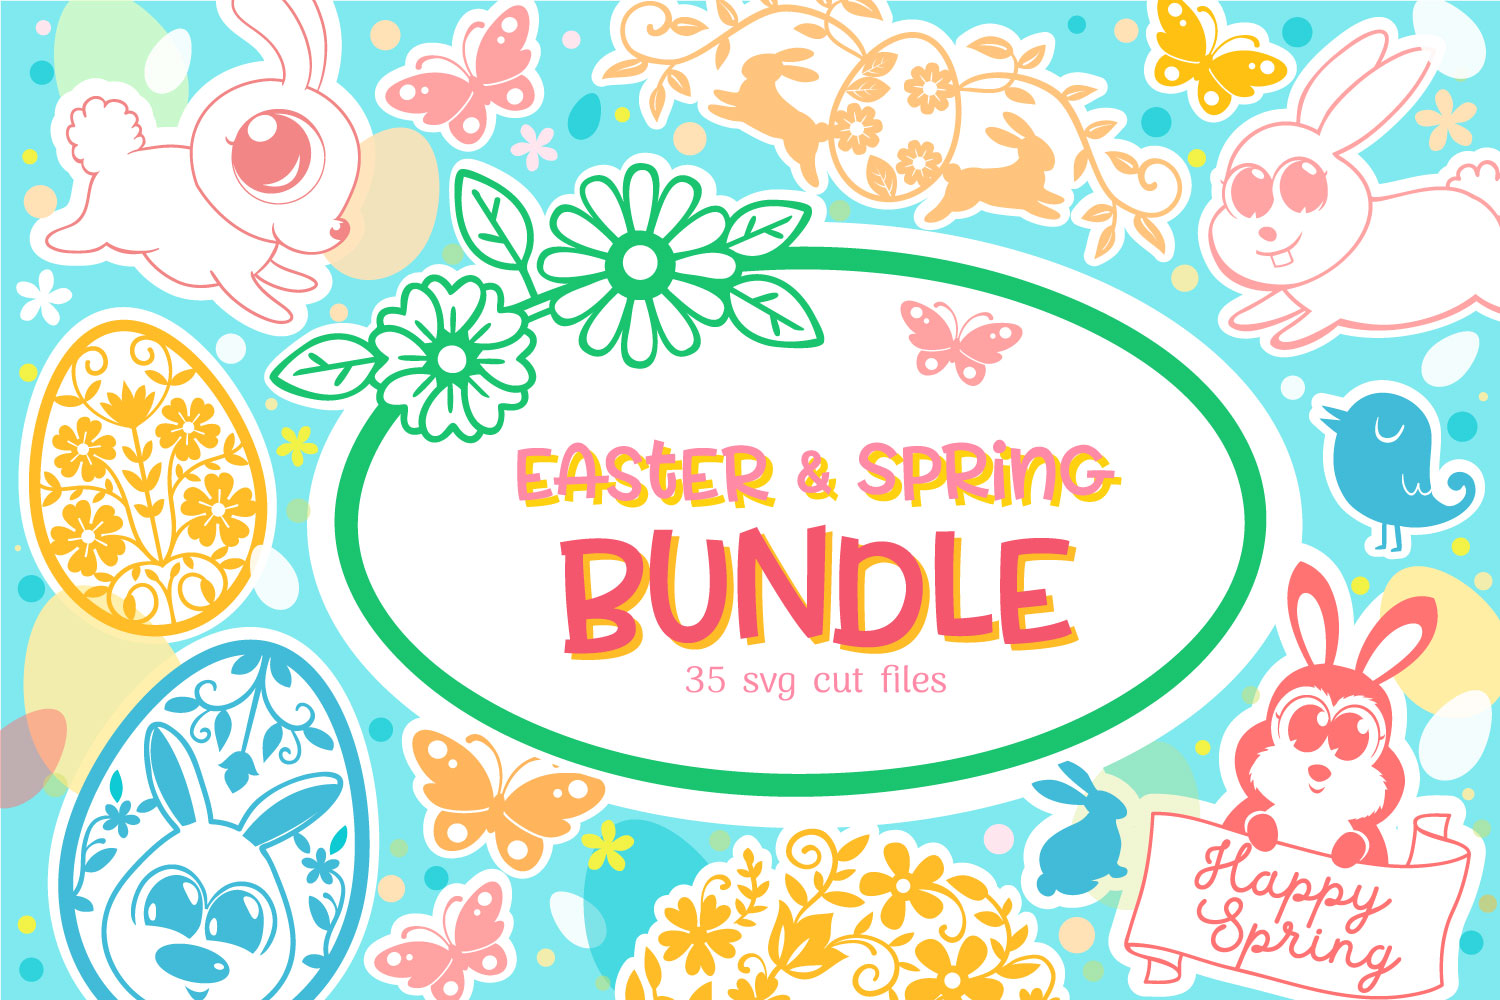 Download Free Easter Spring Bundle 35 Cut Files Graphic By Tatiana Cociorva for Cricut Explore, Silhouette and other cutting machines.